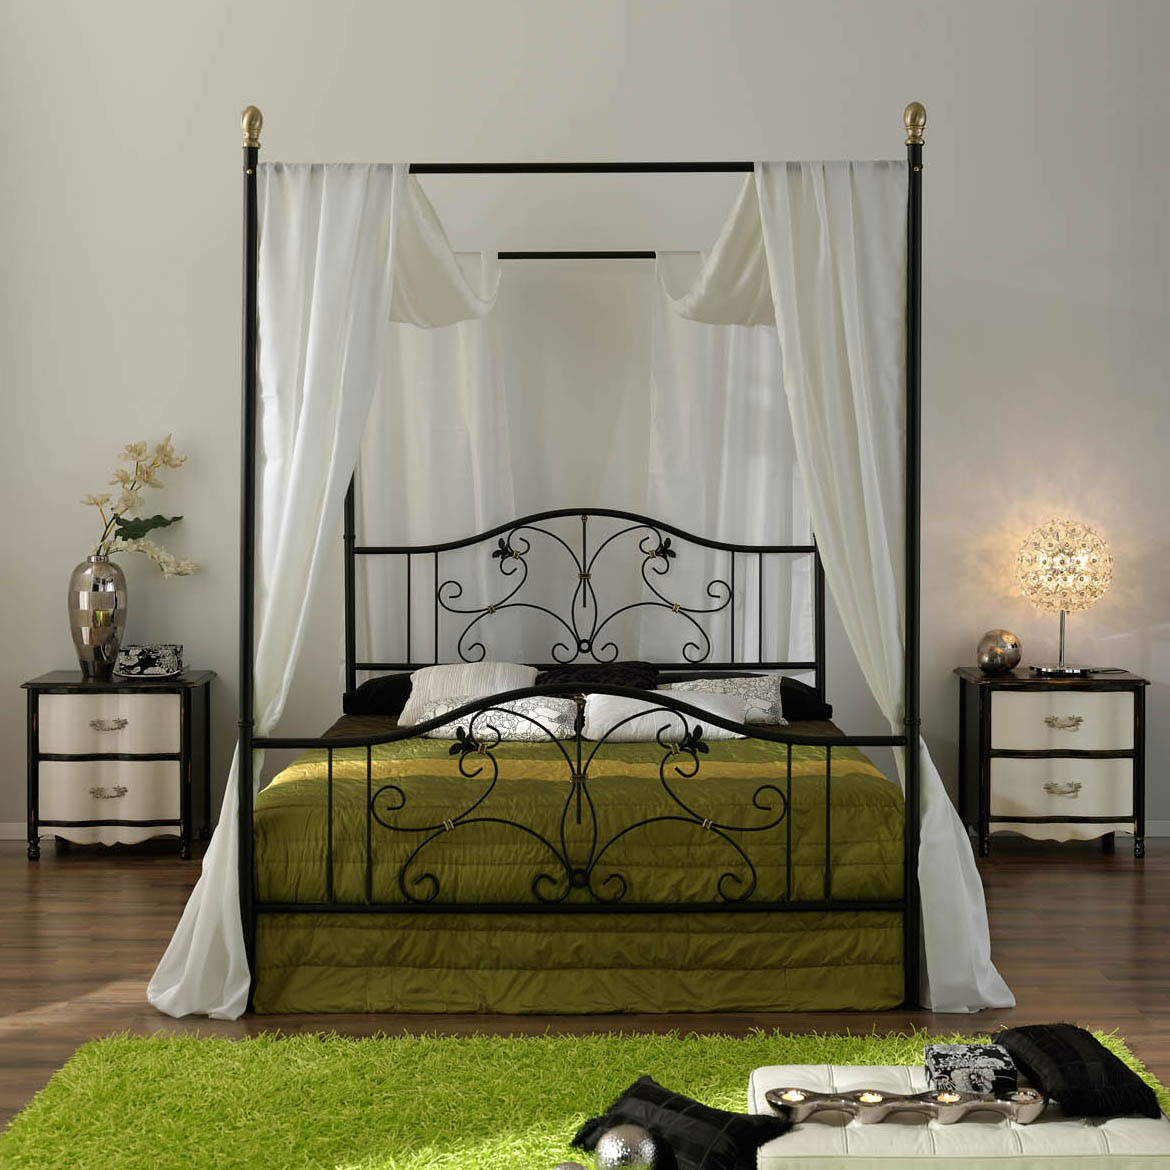 Iron canopy bed frame homesfeed for Brass canopy bed frame